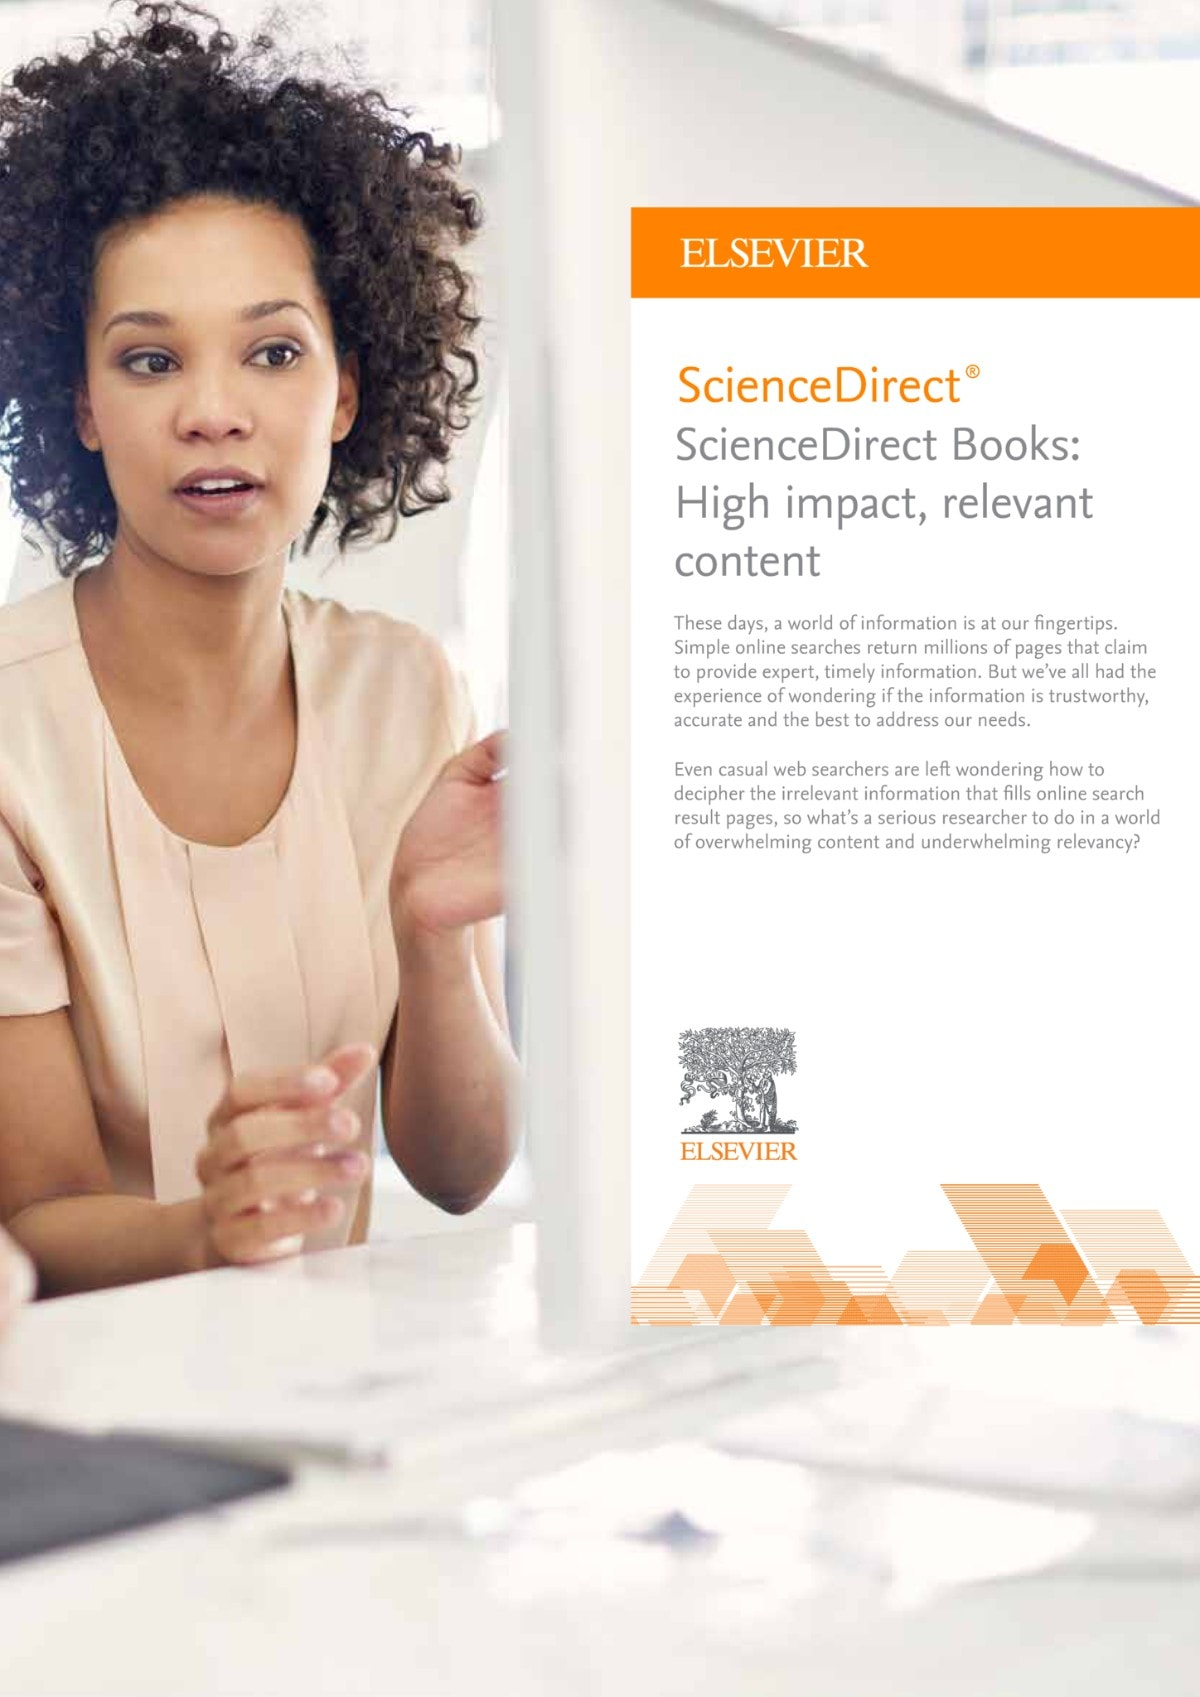 Elsevier   Download the SD Books brochure